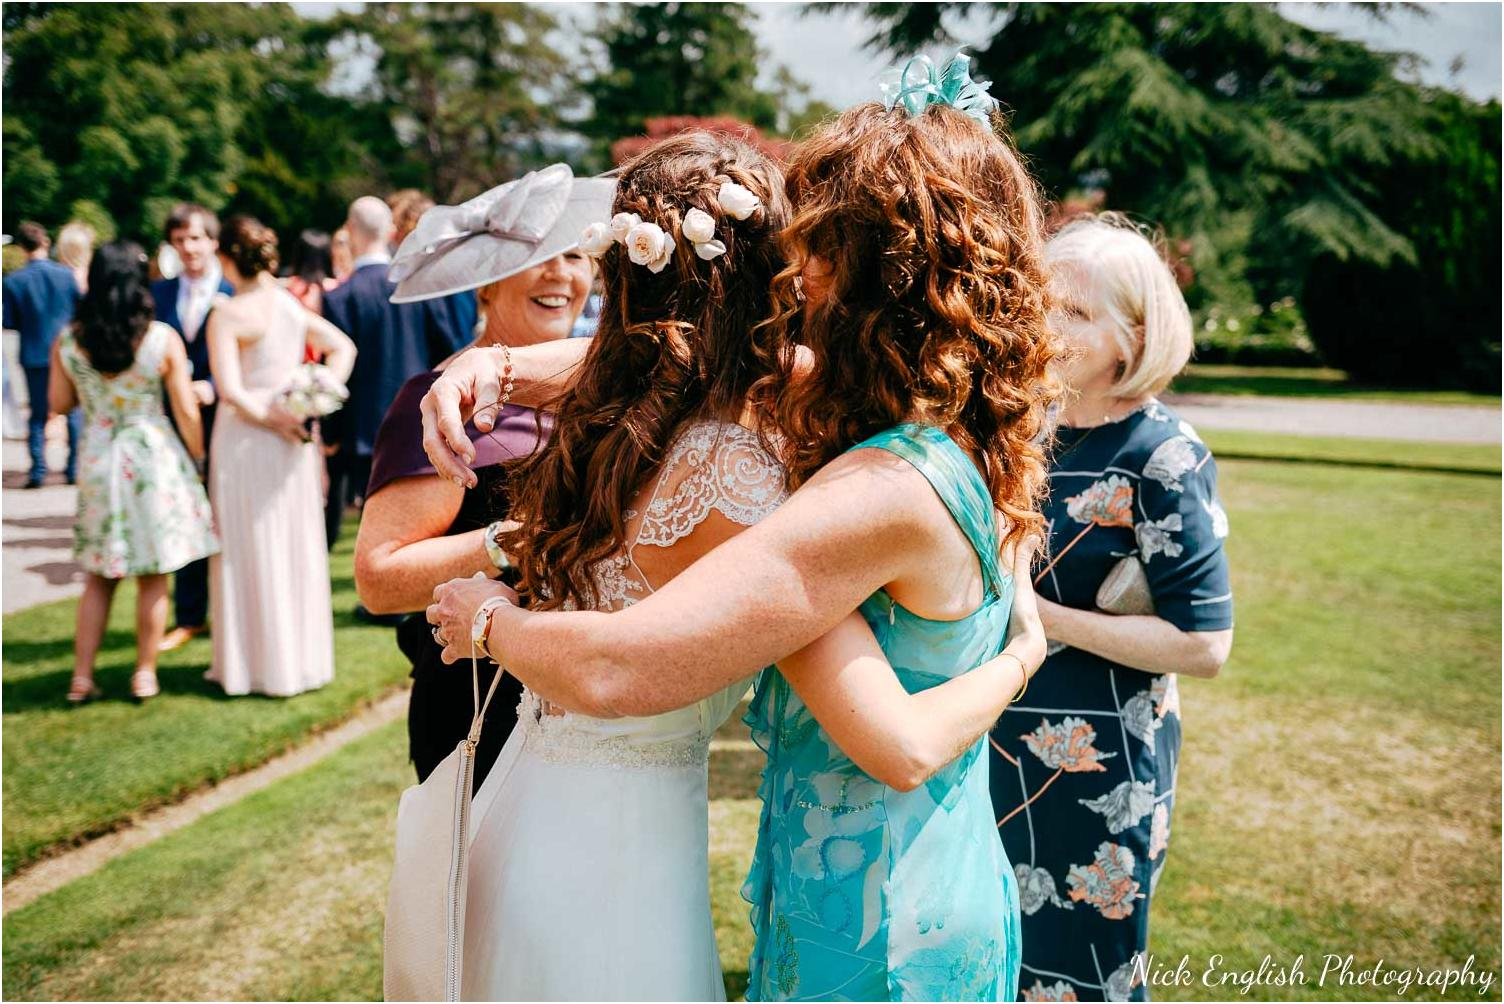 Eaves_Hall_Outdoor_Wedding_Photographs-137.jpg